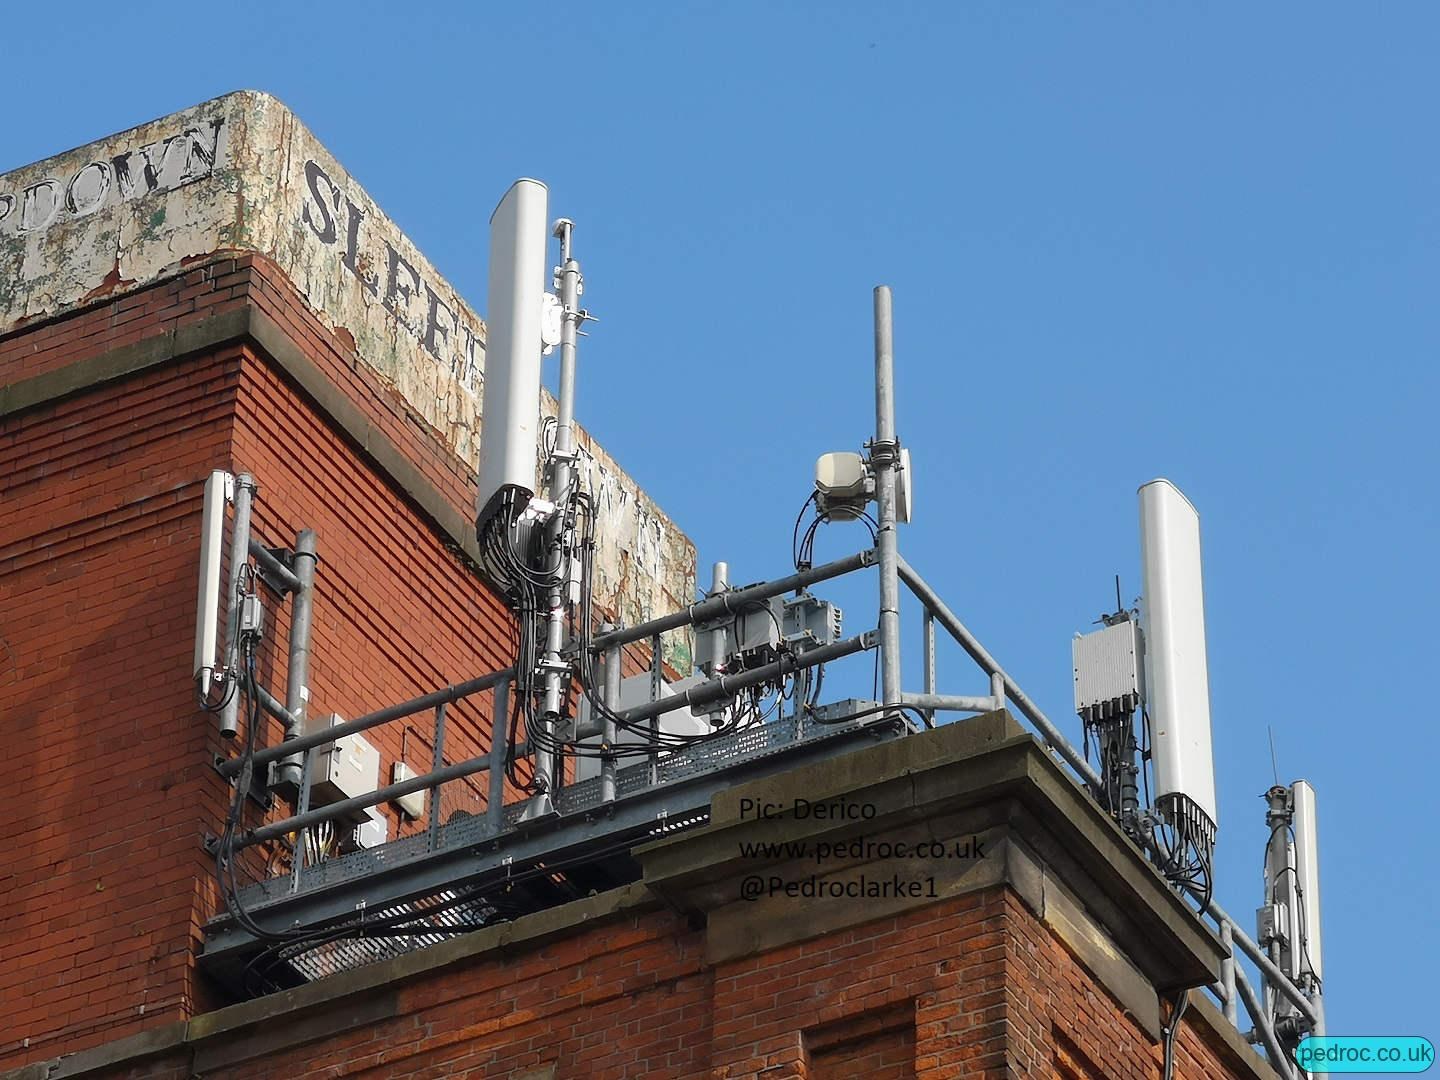 EE 5G Mast in Manchester Bower Street using Huawei RRU 5258 for 8T8R N78 and Huawei AOC4518r8v06 antennas.